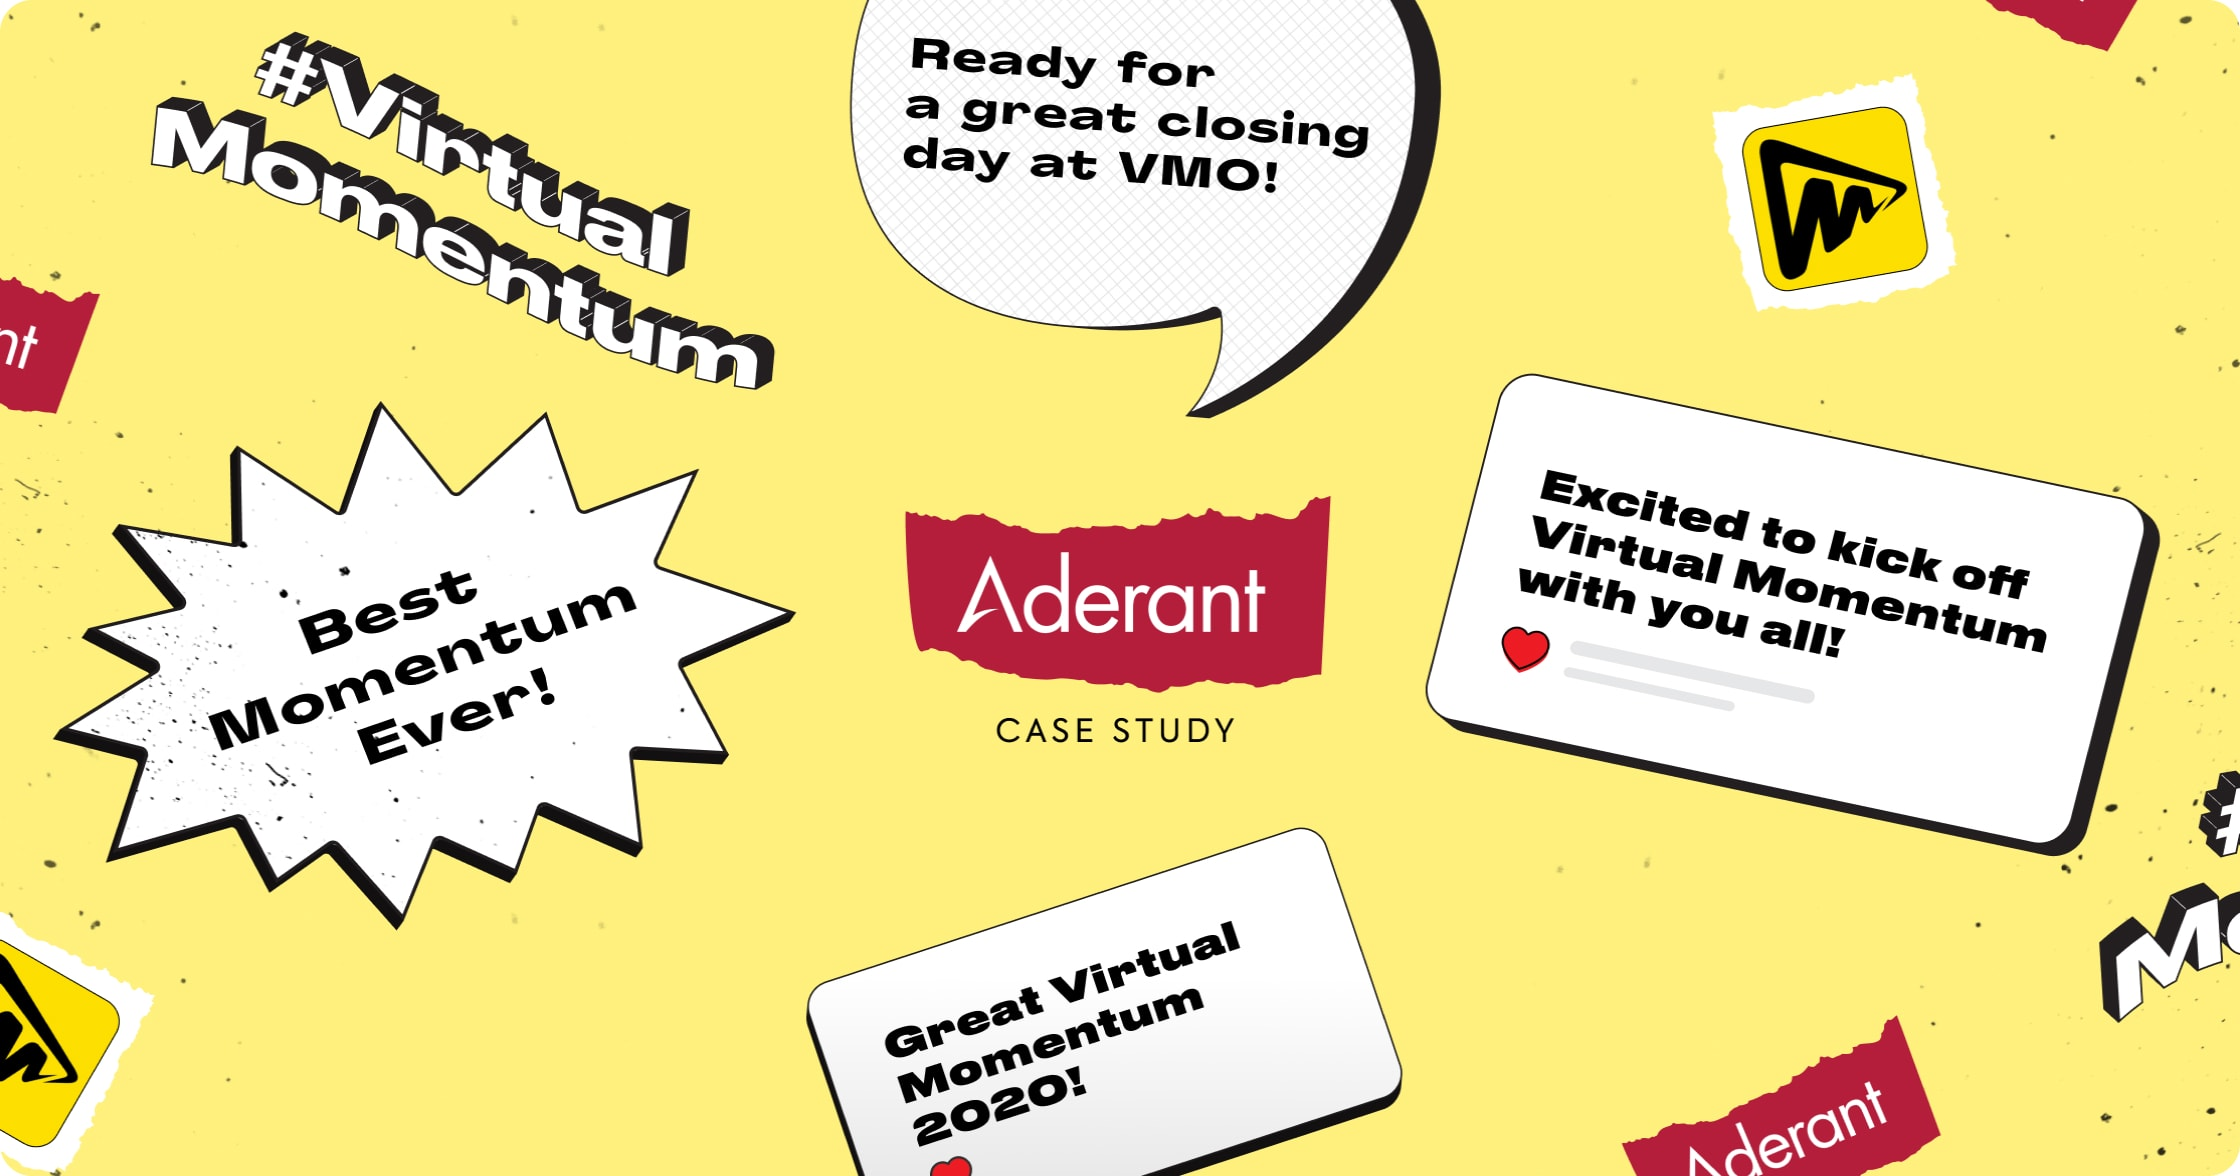 Aderant's online user conference & virtual event example